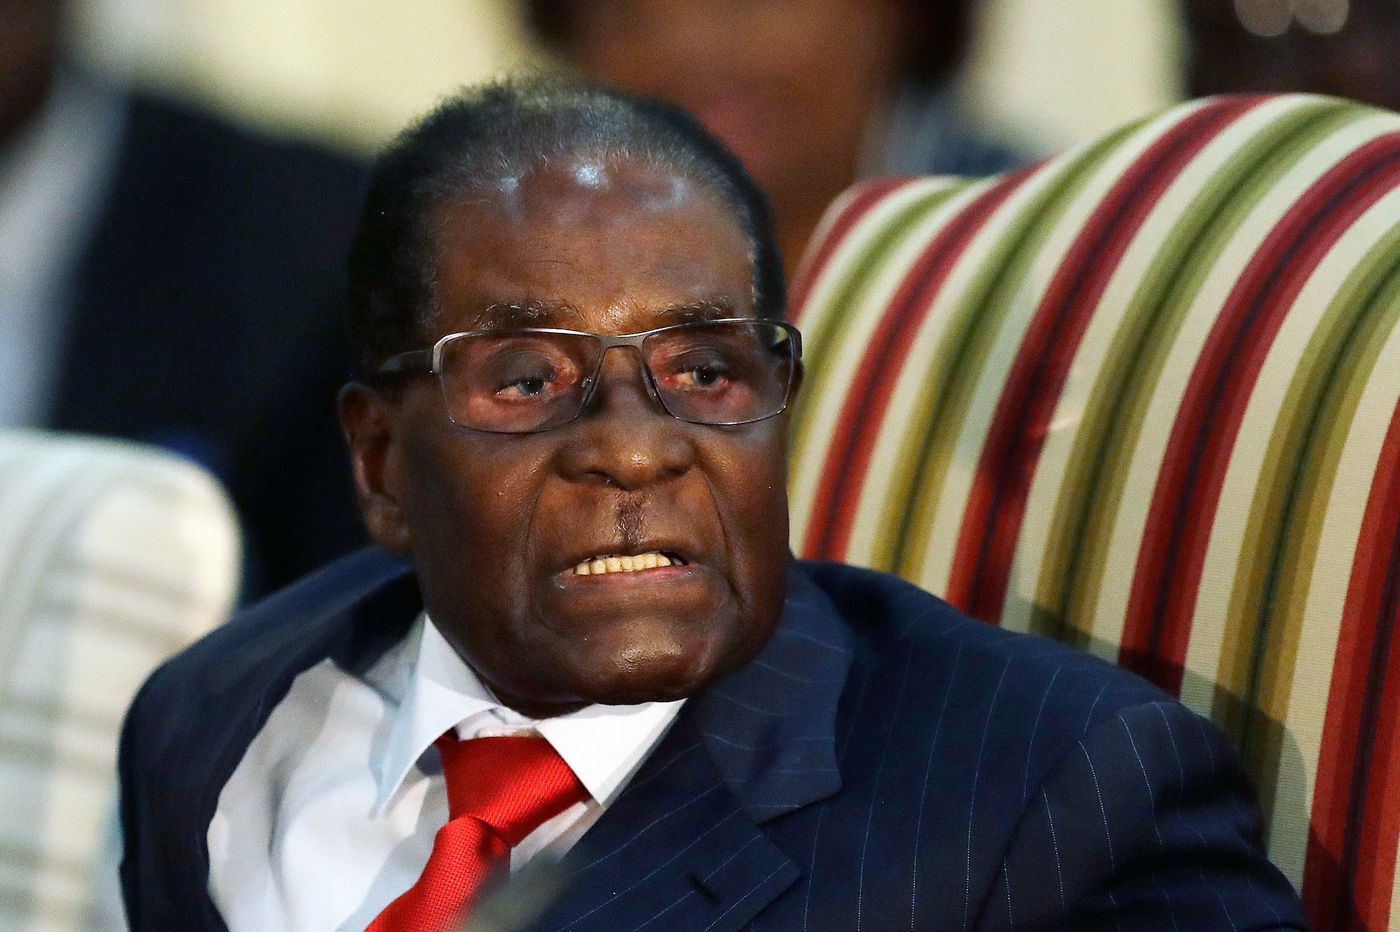 Robert Mugabe, Zimbabwean leader who helped liberate and destroy his country, dies at 95